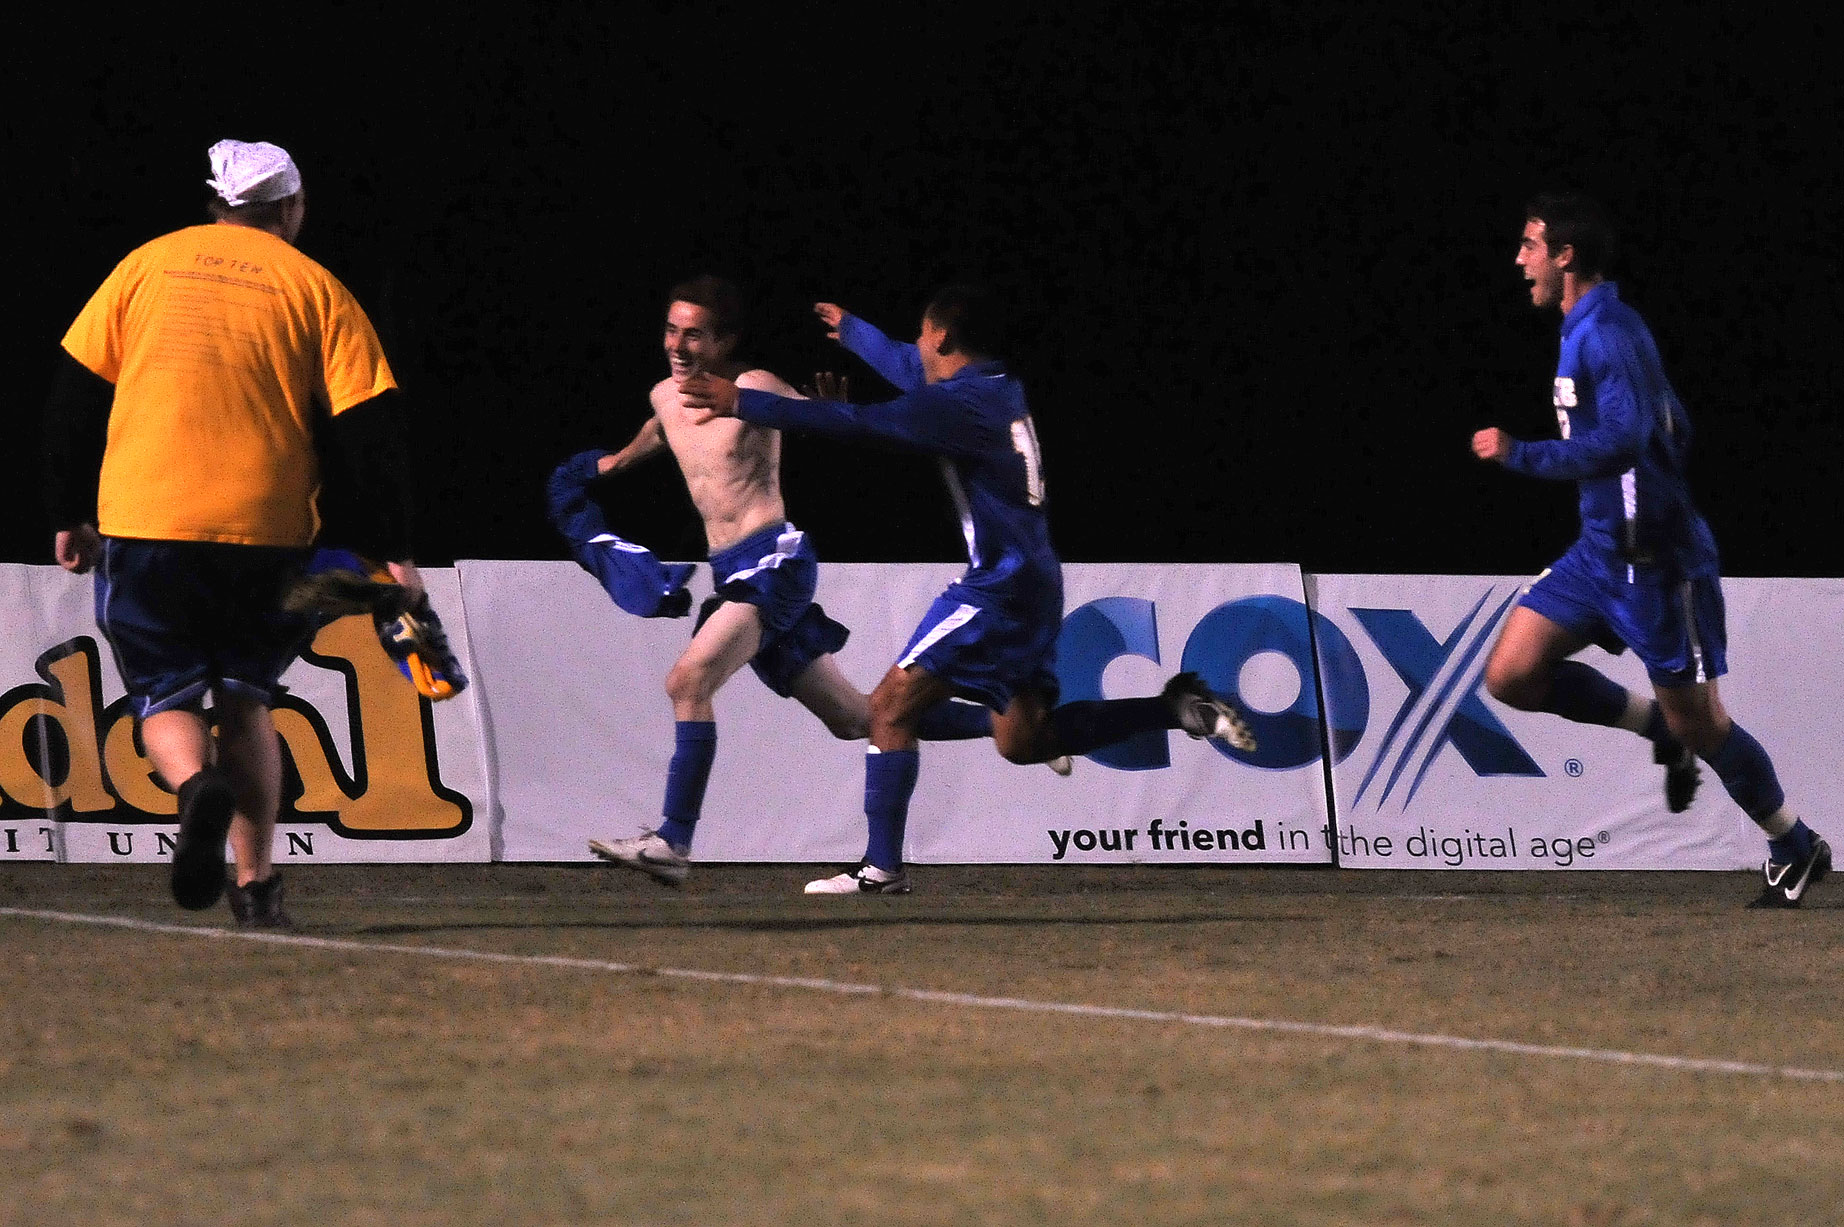 Celebrating after scoring the winning goal, Nic Ryan prepares to get mugged by the onrushing UCSB crowd.